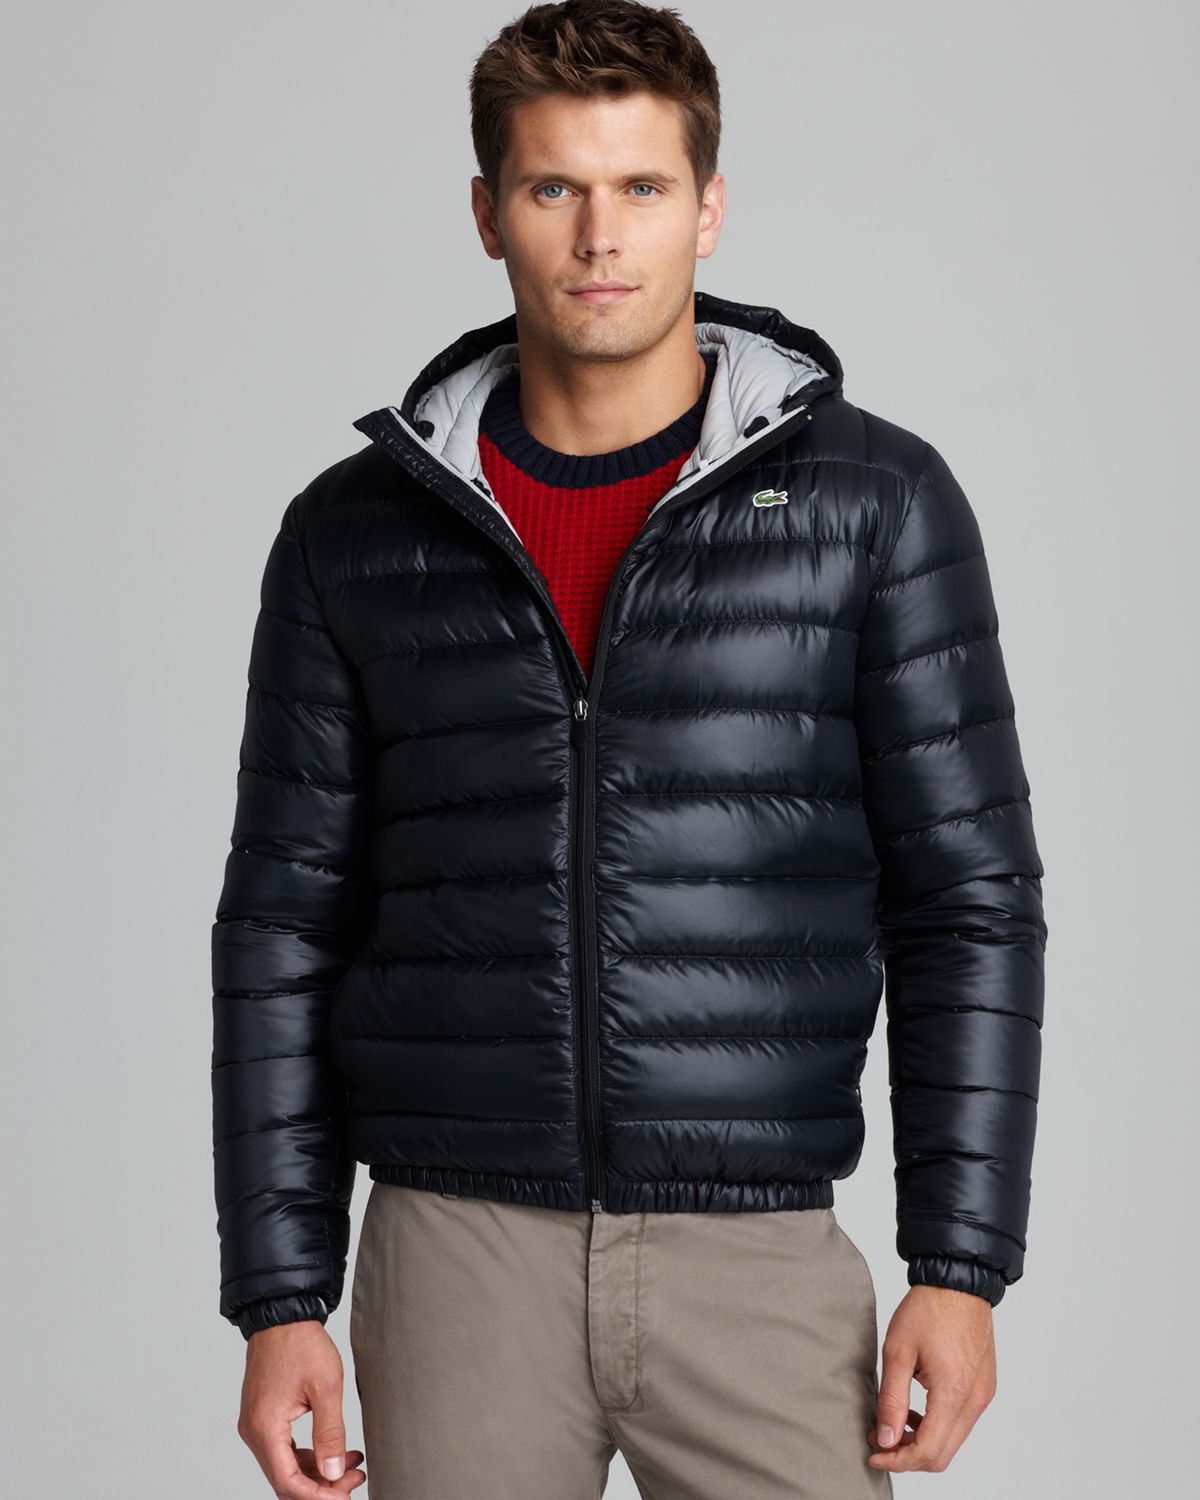 Packable jacket men